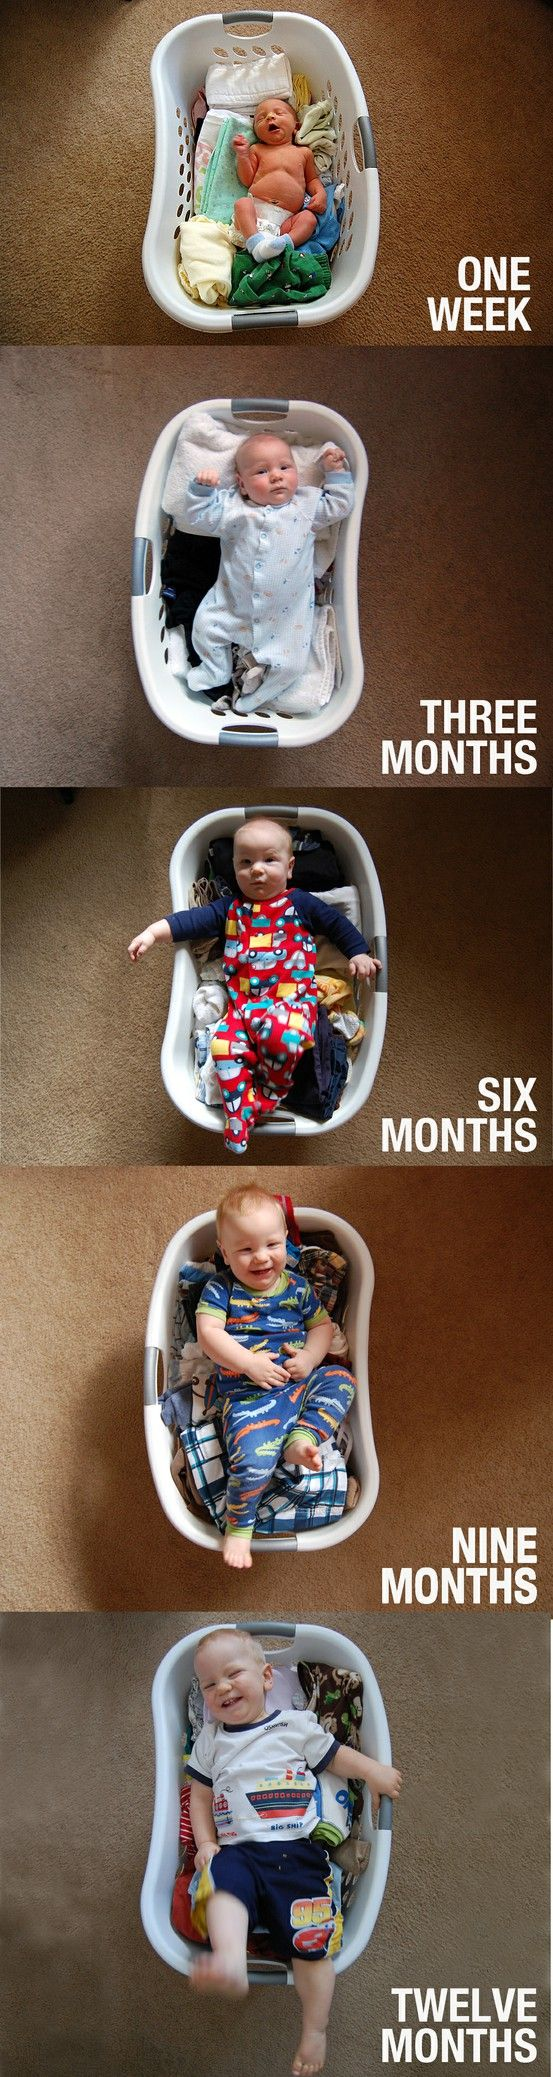 baby in a basket, photo idea!